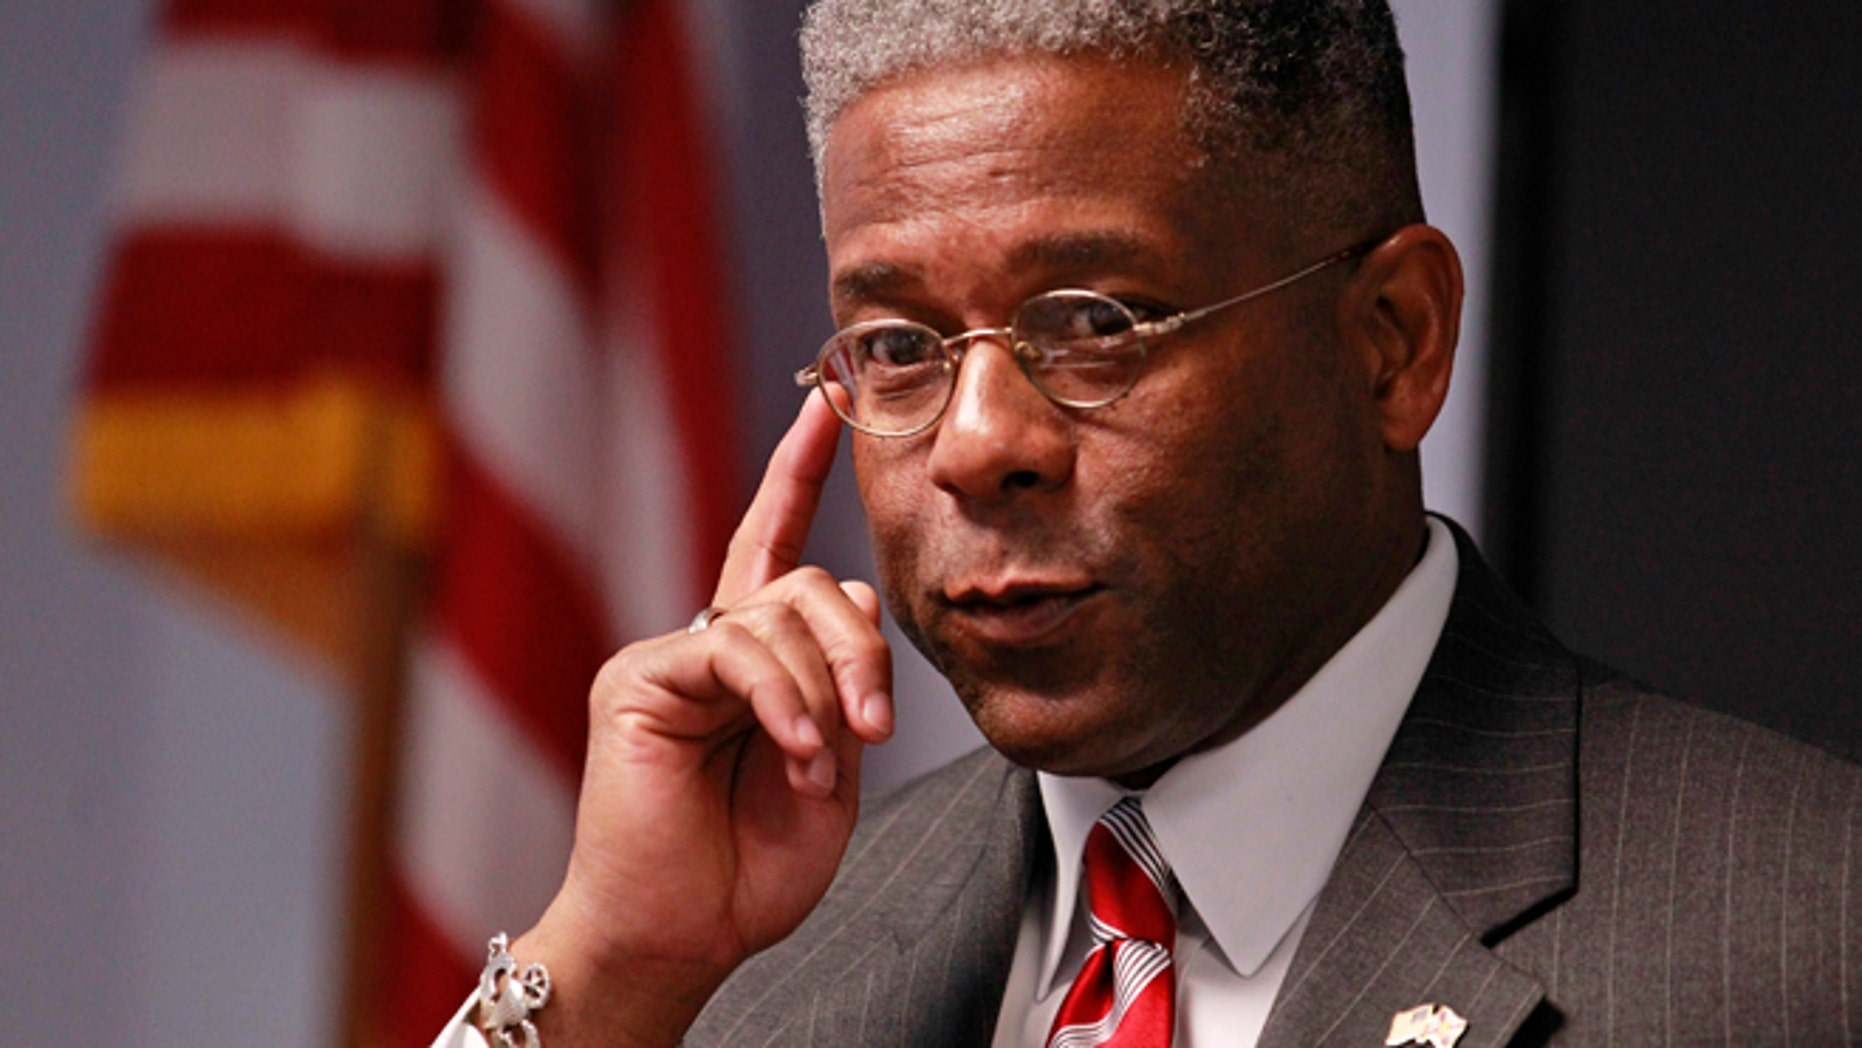 FILE: Oct. 18, 2012: Republican U.S. Rep. Allen West listens to a question at a campaign stop in Boca Raton, Florida.